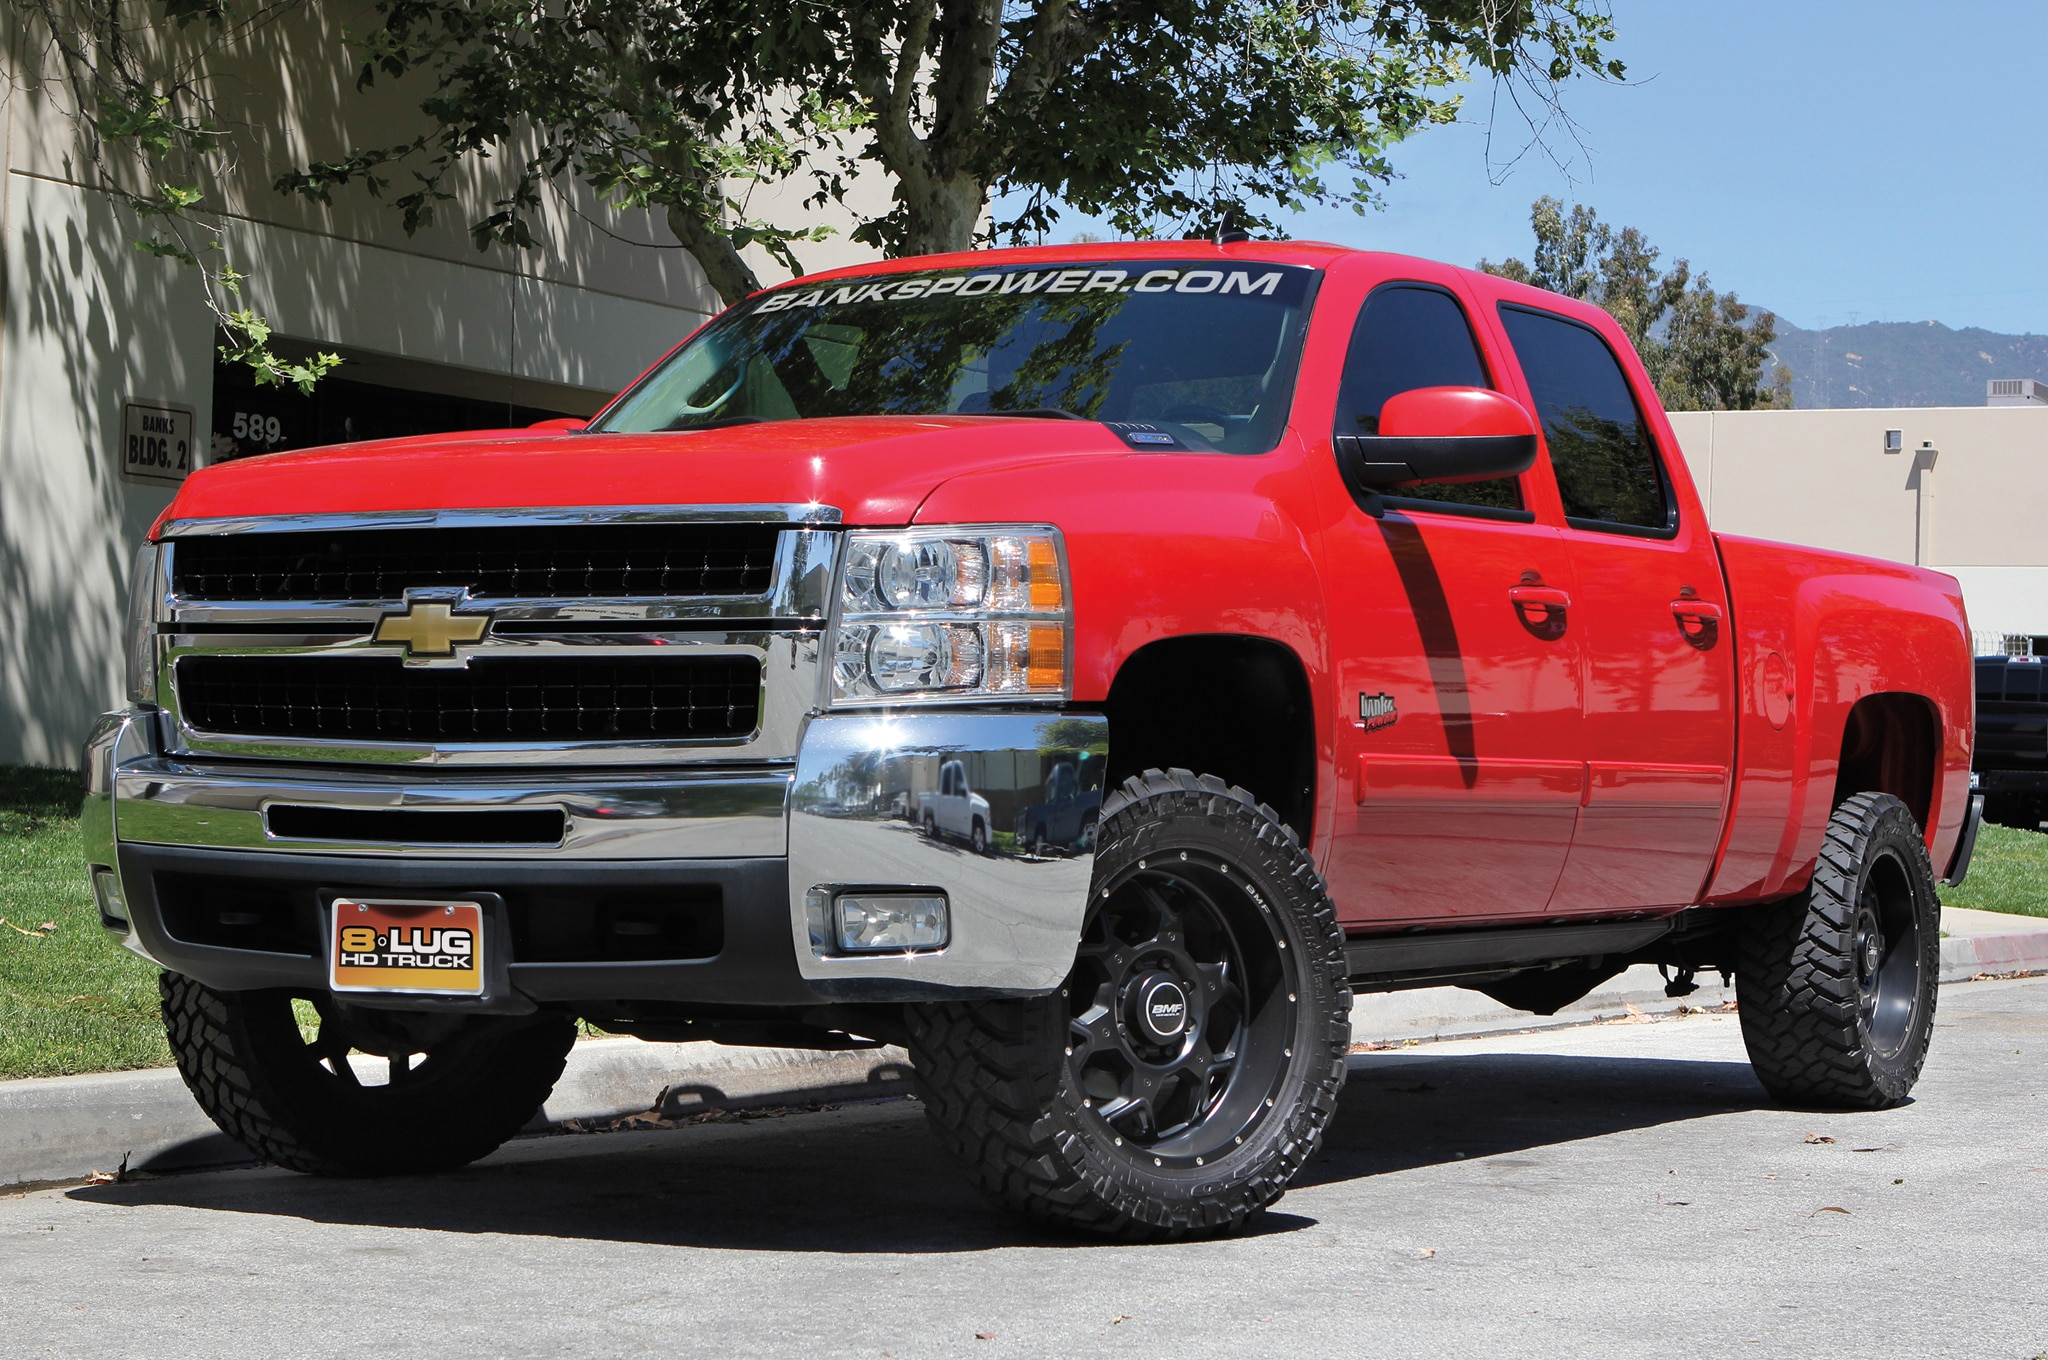 2007 chevrolet silverado and gmc sierra photos and details